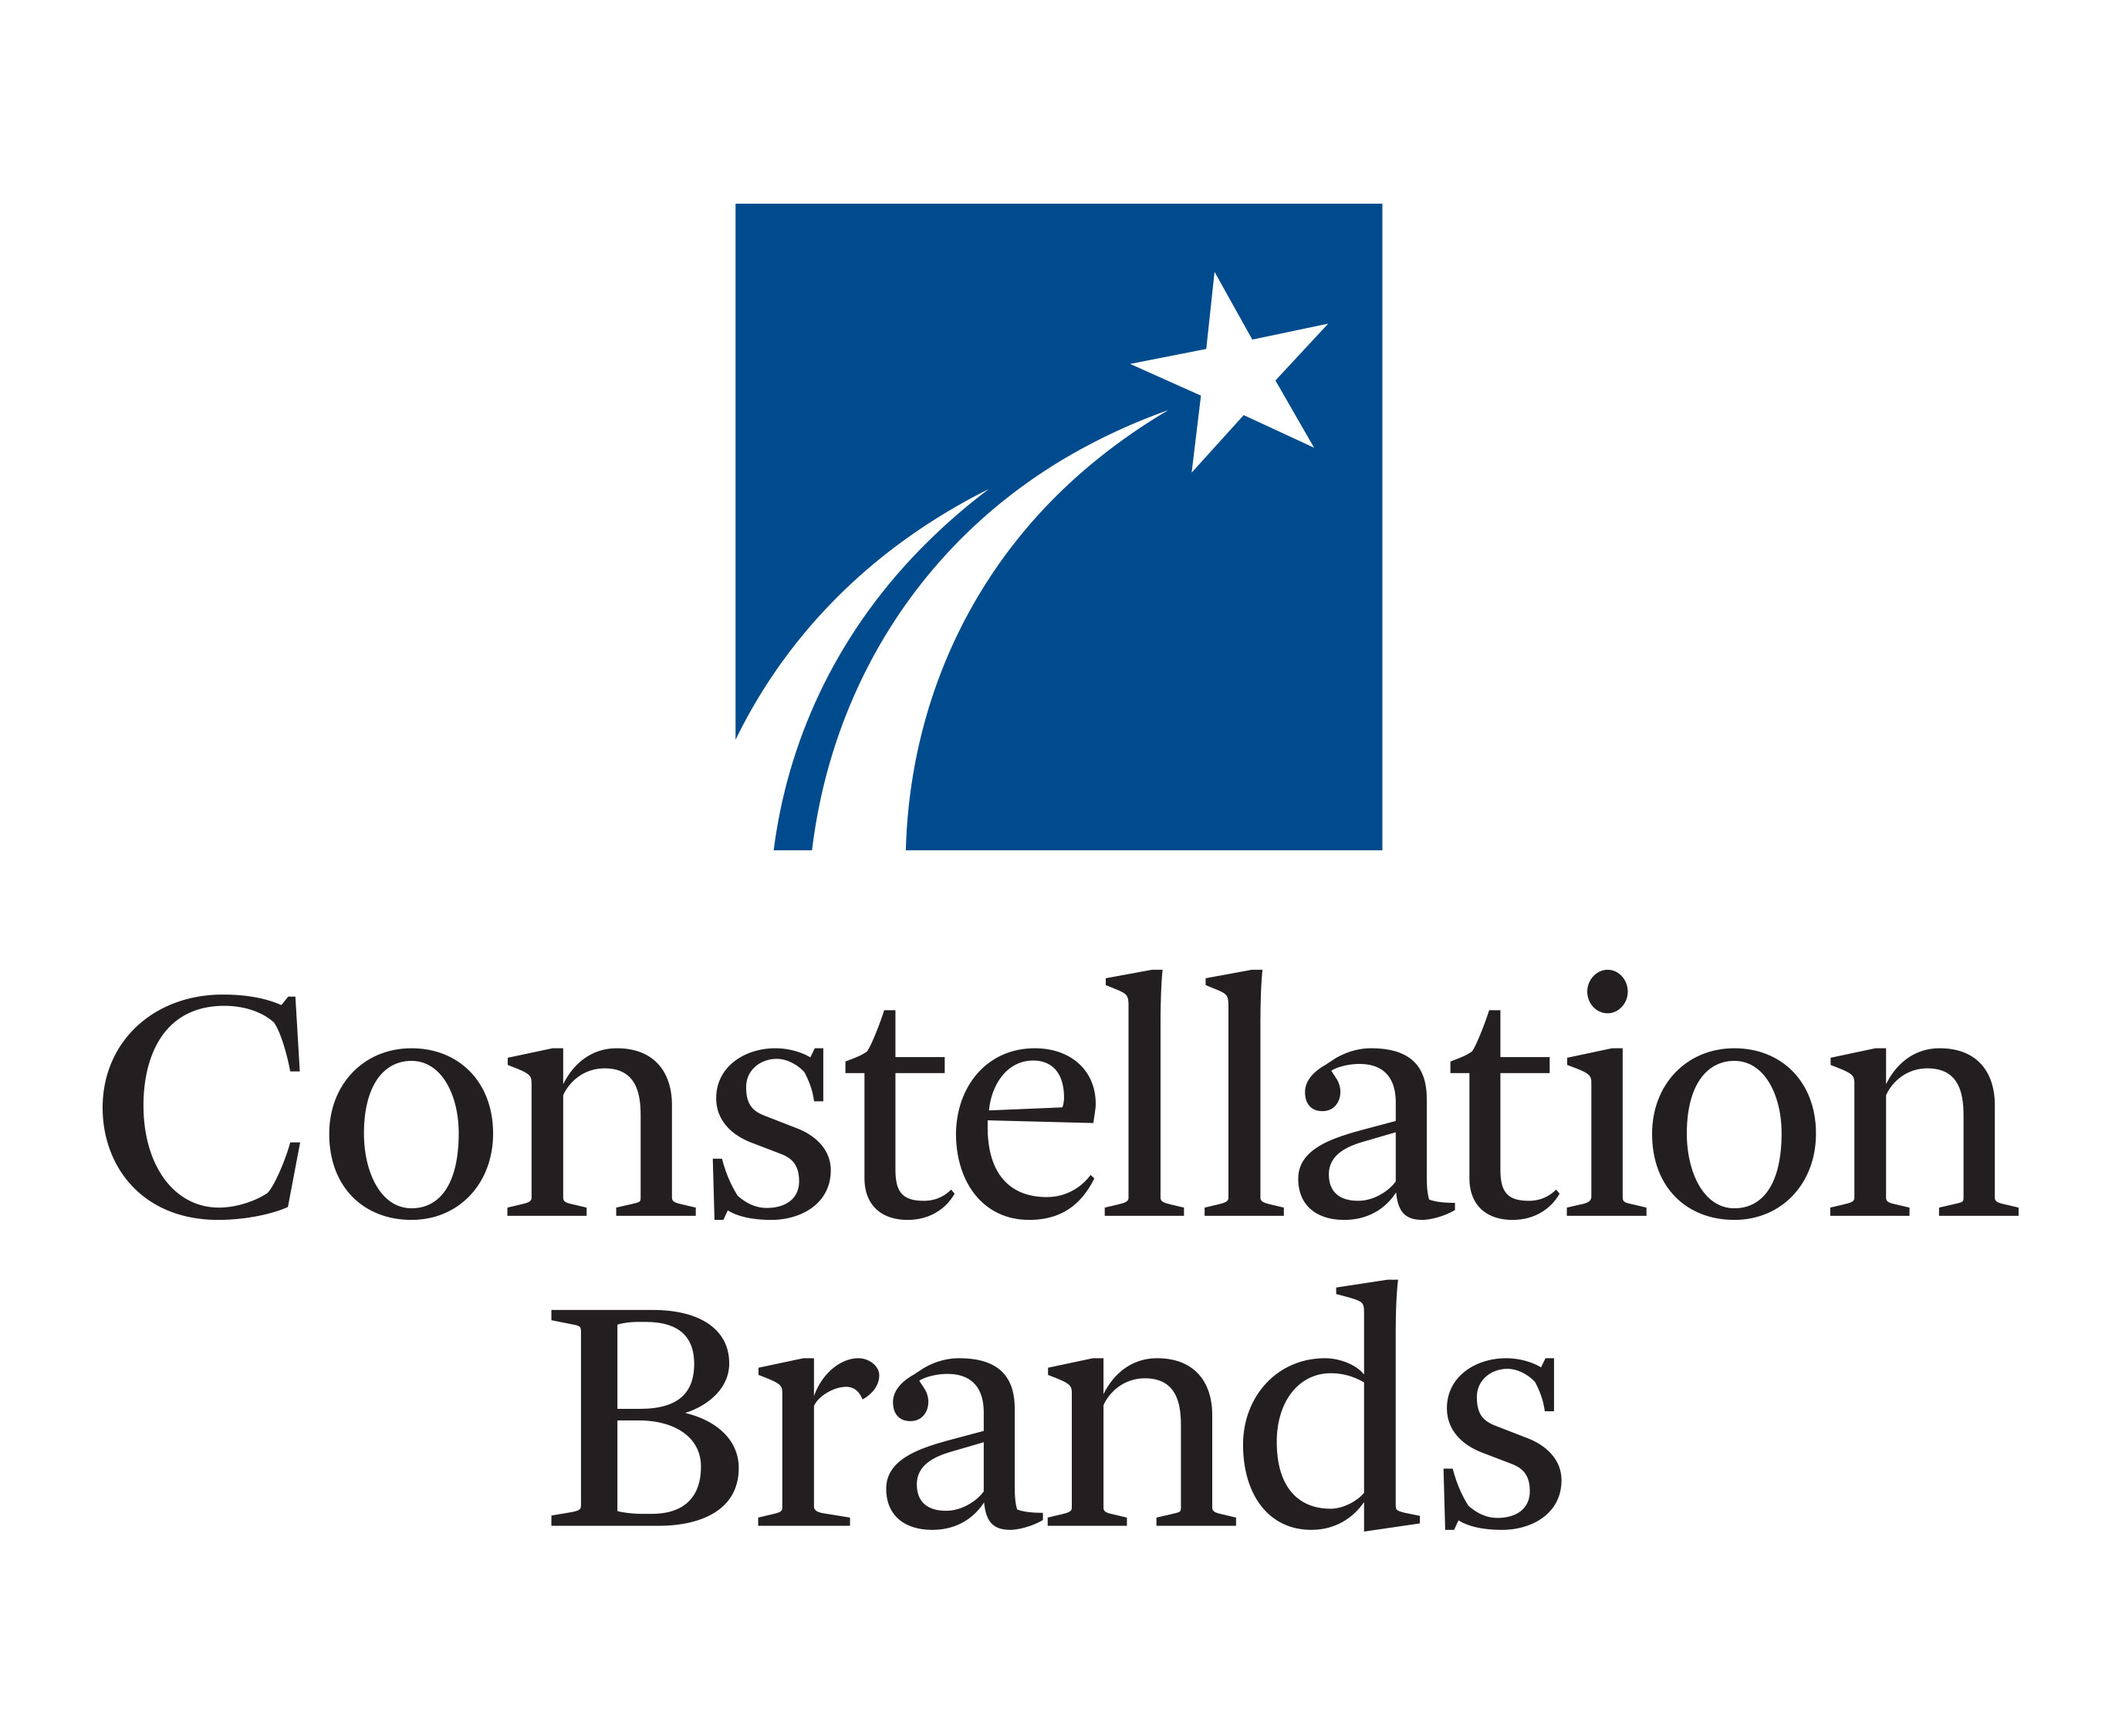 EPS for Constellation Brands, Inc. (STZ) Expected At $1.88